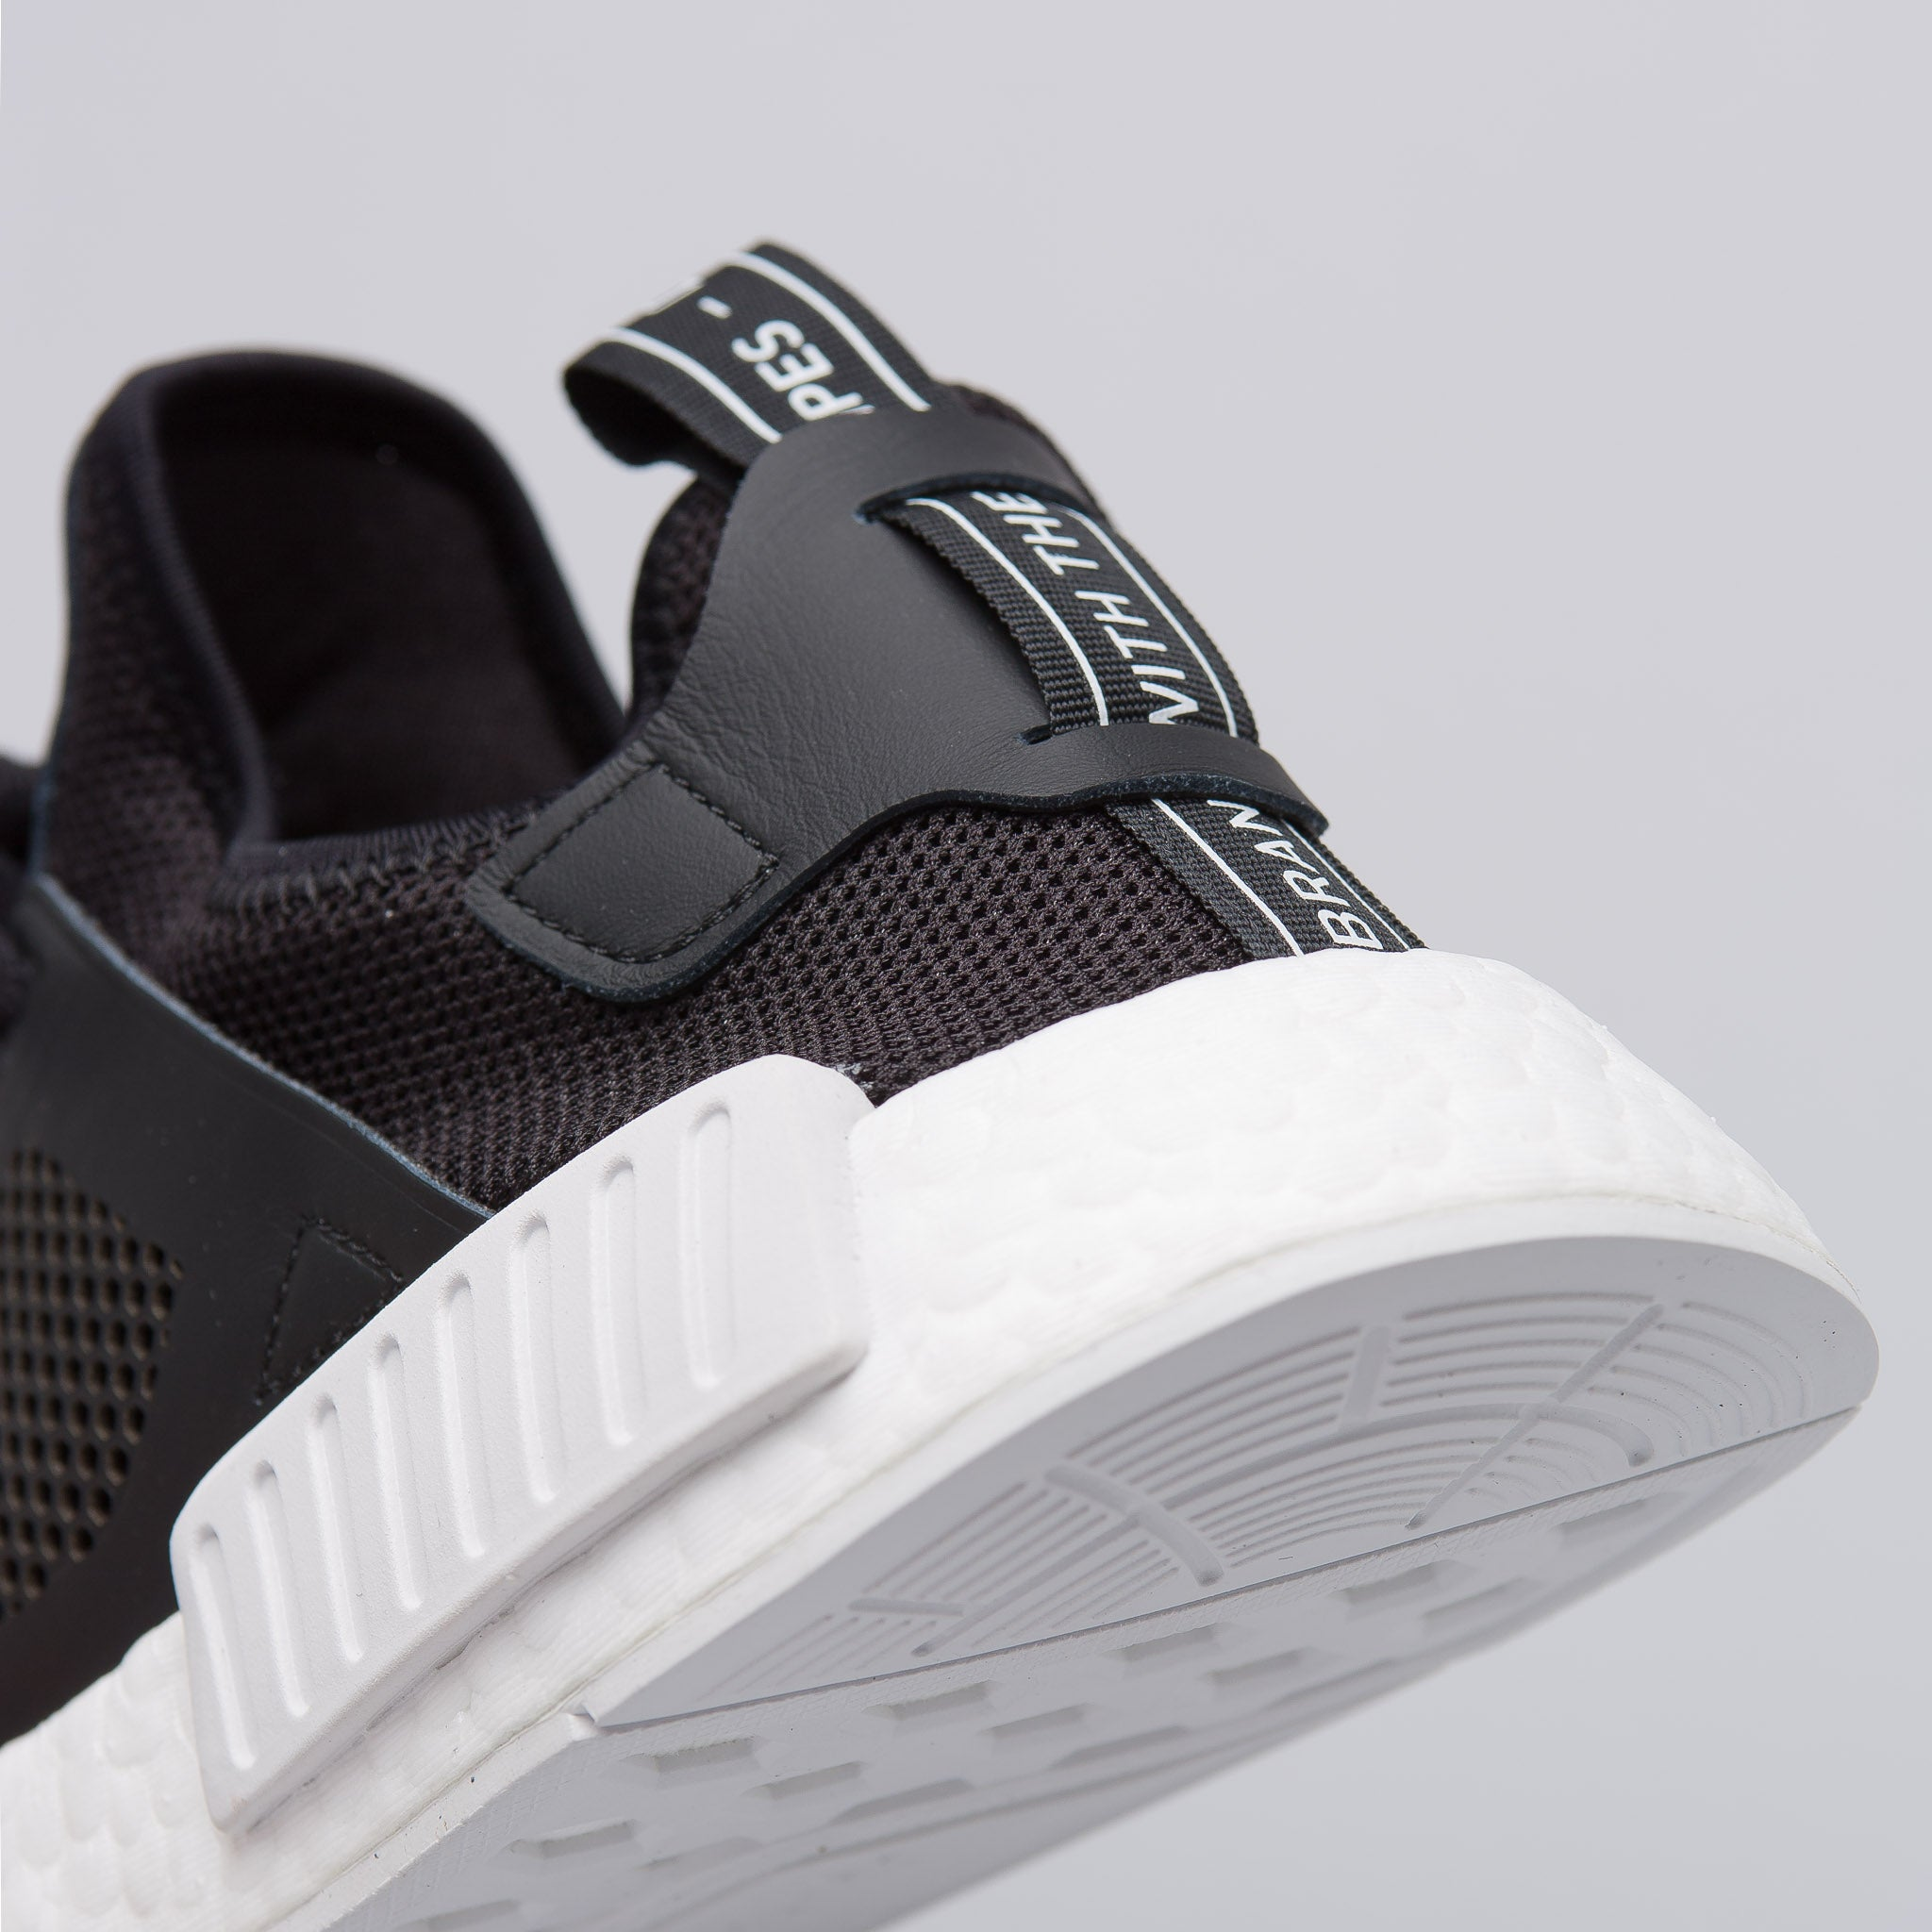 Discount Adidas nmd xr1 'og' core black by1909 for sale Pirate Black